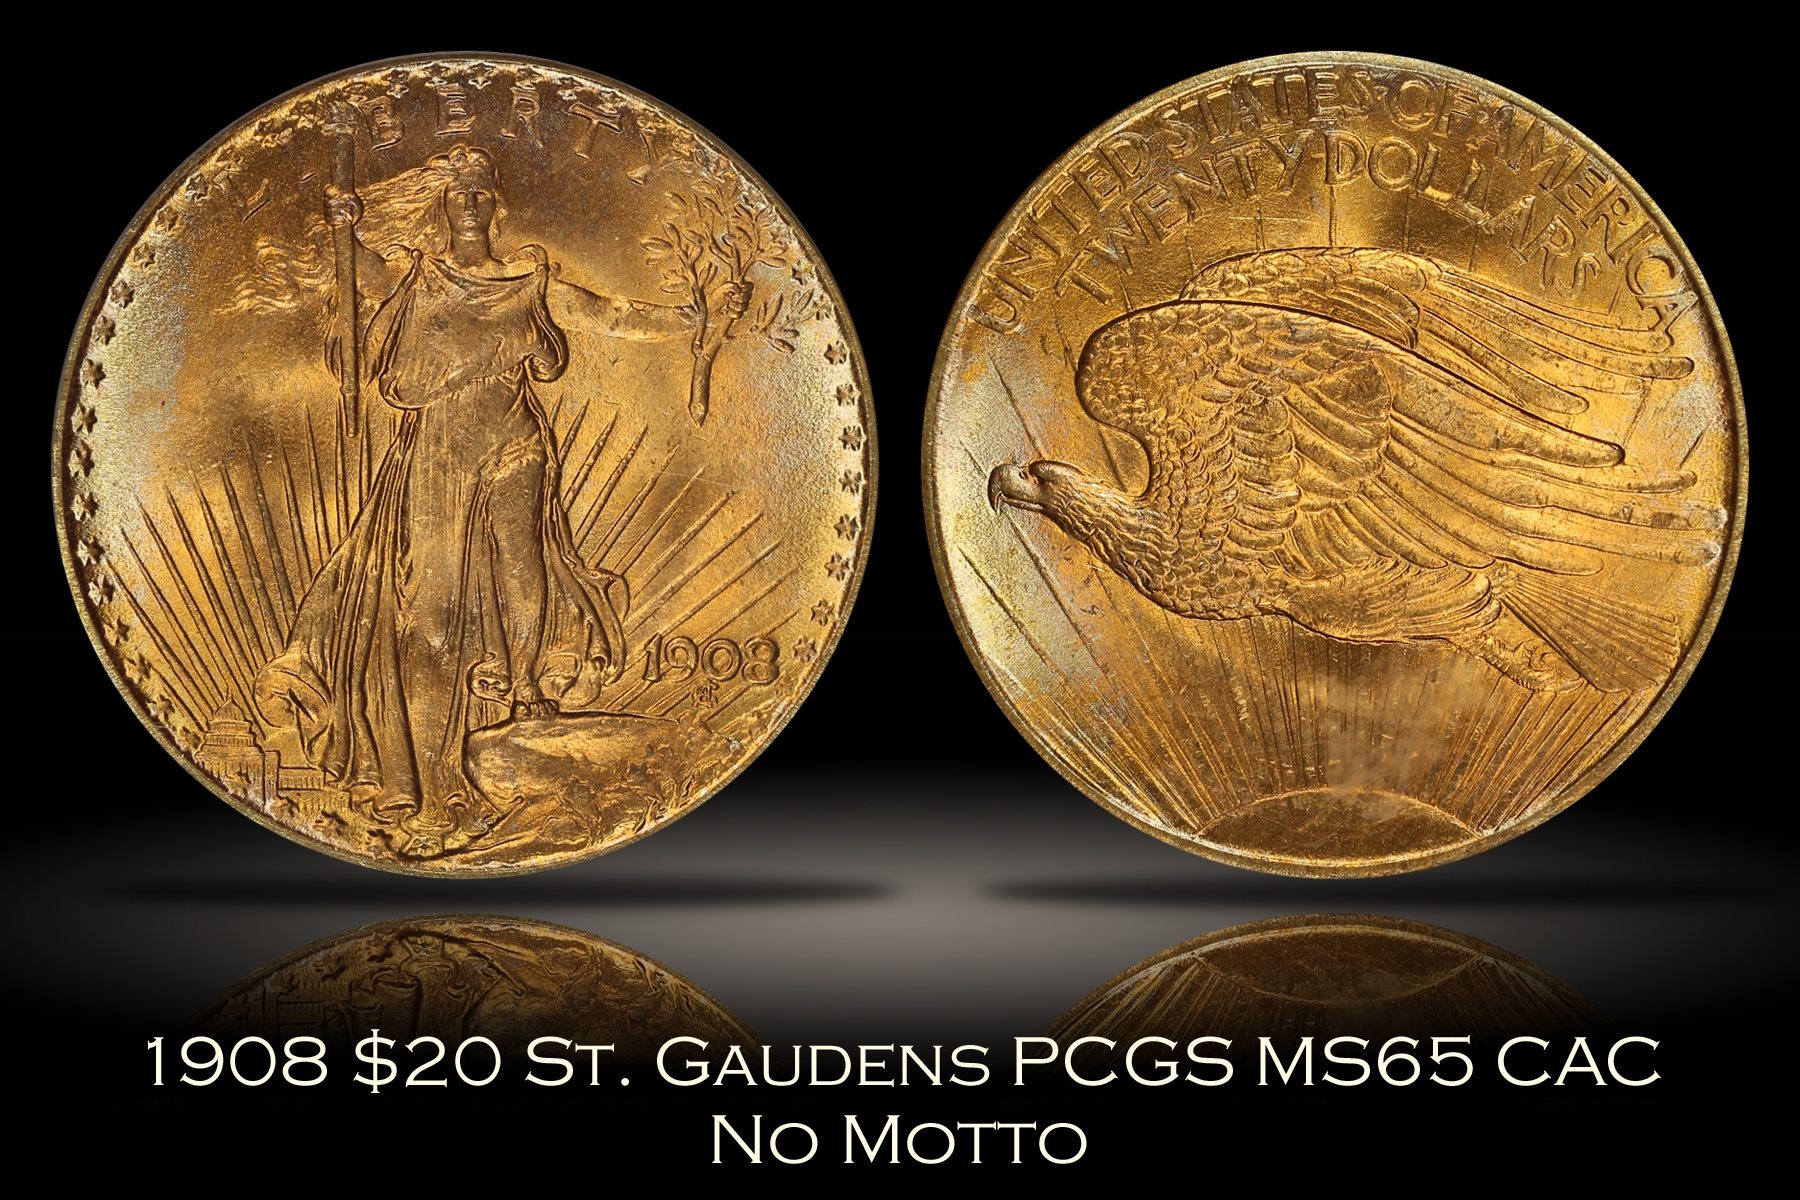 1908 $20 No Motto St. Gaudens Gold PCGS MS65 CAC